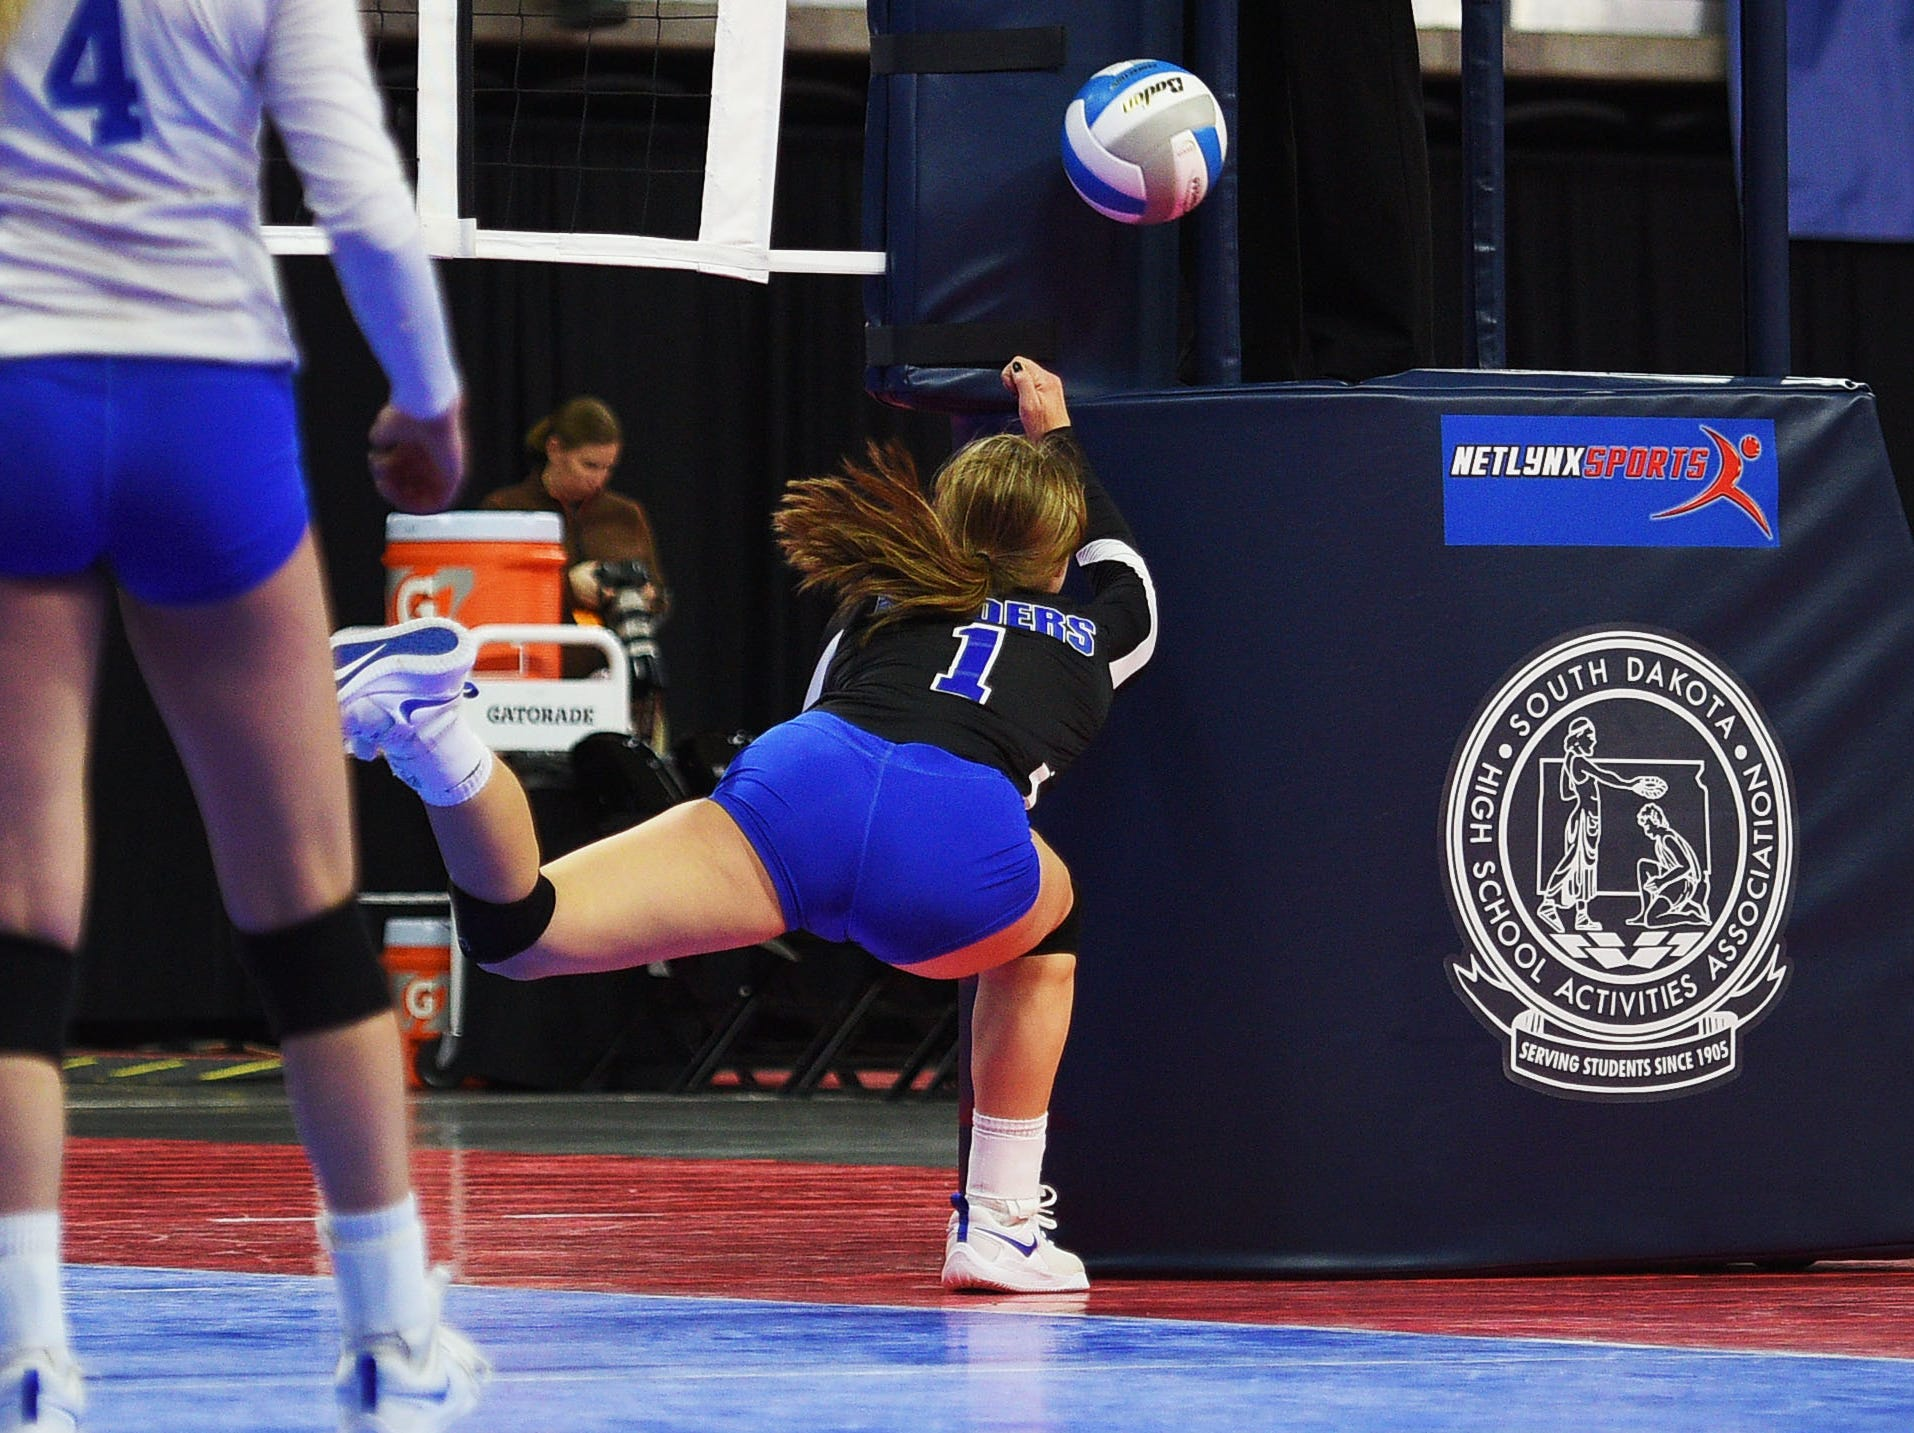 RC Stevens' Marlee Schneider dives into the post during the game against Watertown during the semifinals Friday, Nov. 16, at the Denny Sanford Premier Center in Sioux Falls.